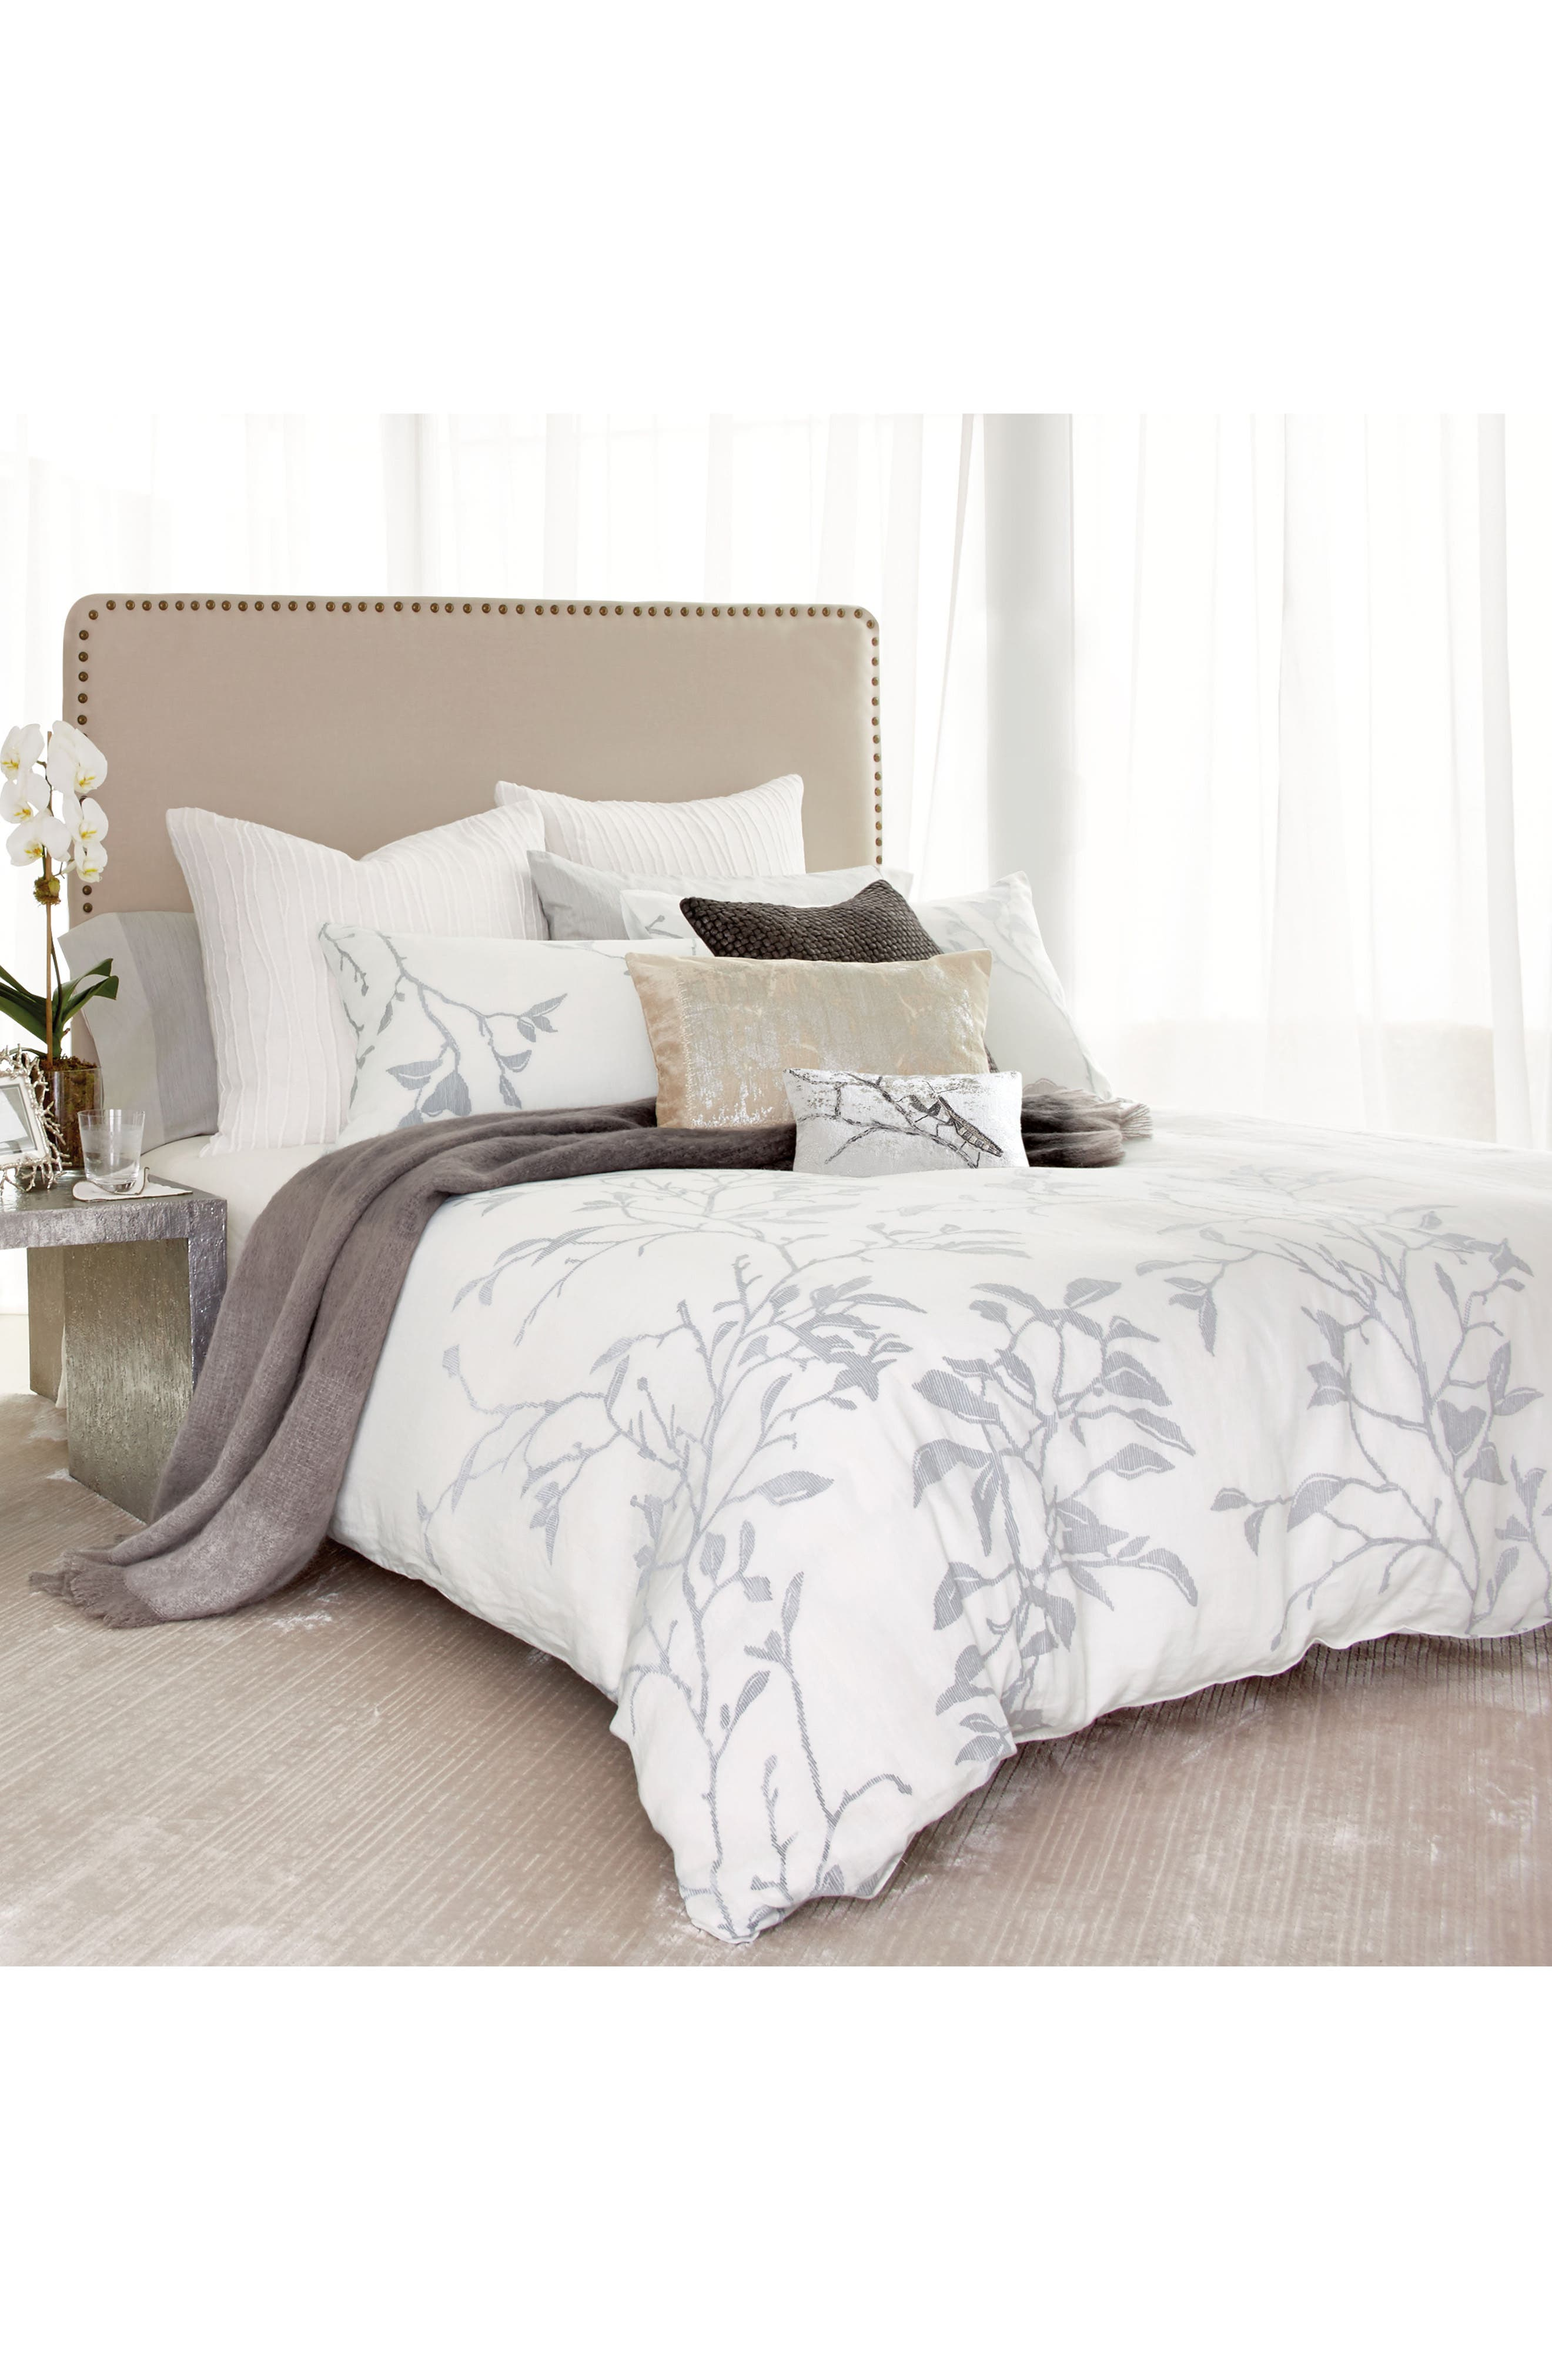 Branch Duvet Cover,                             Alternate thumbnail 4, color,